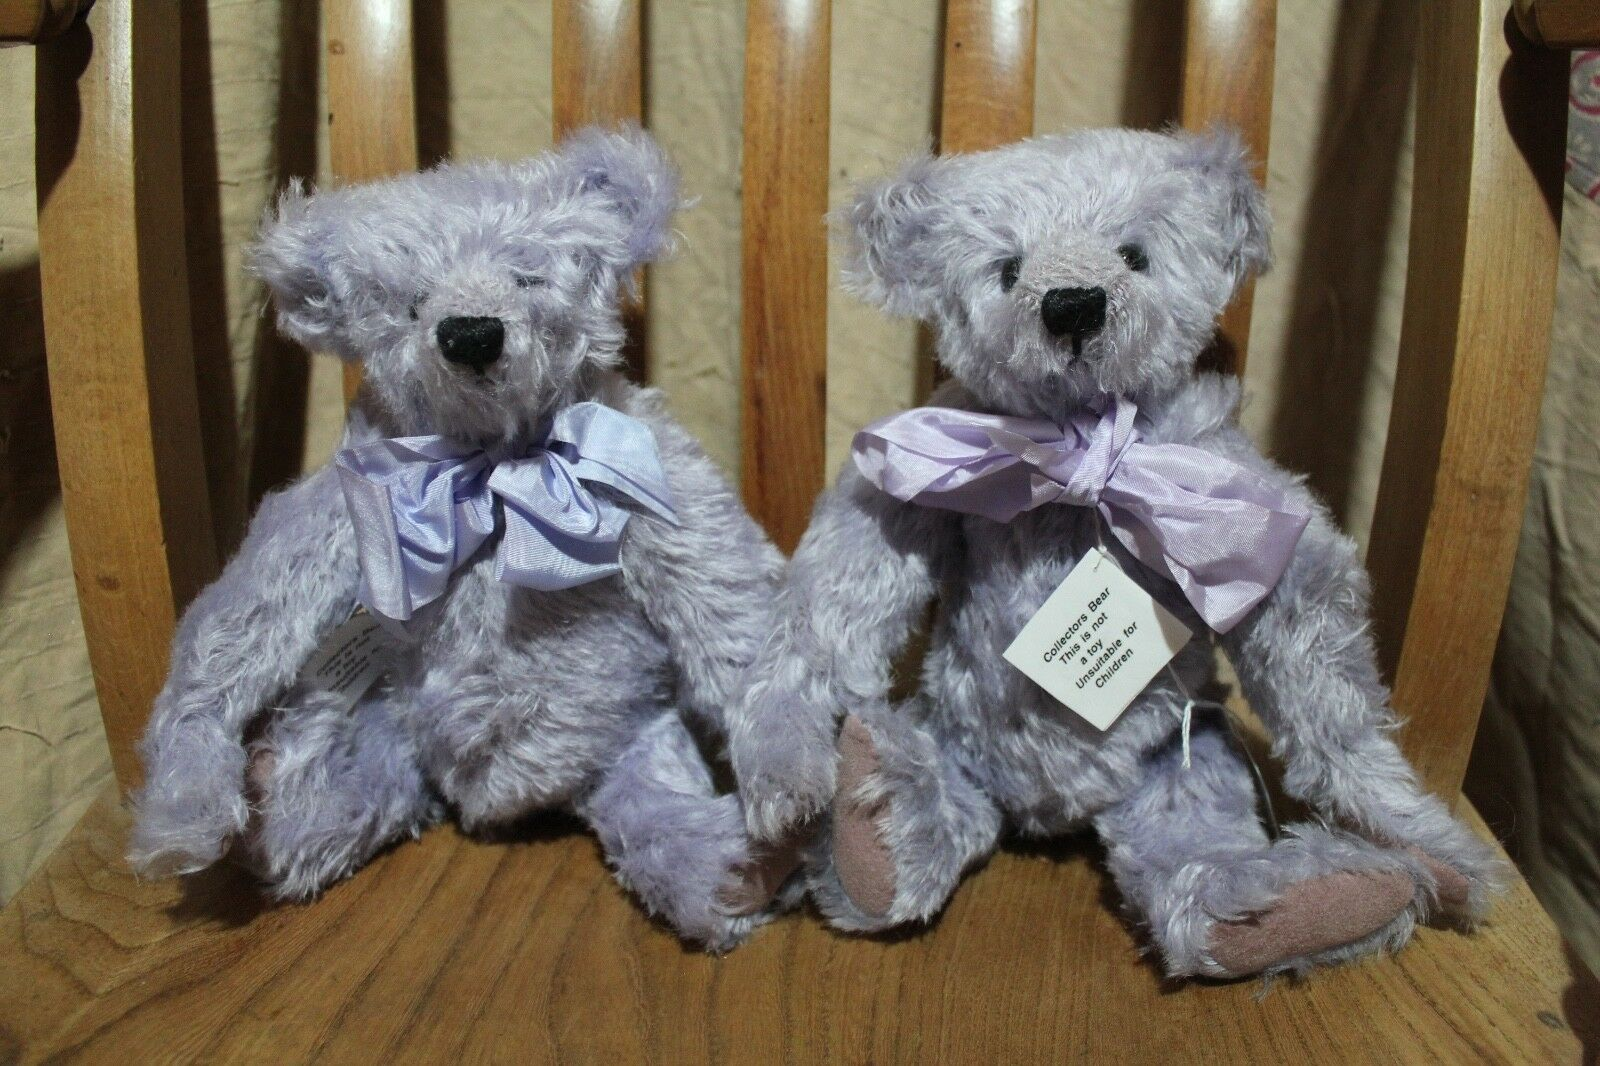 ARTIST BEAR BY SUSAN JANE COLLECTOR TEDDY 1X MELANIE lila 1 of 2